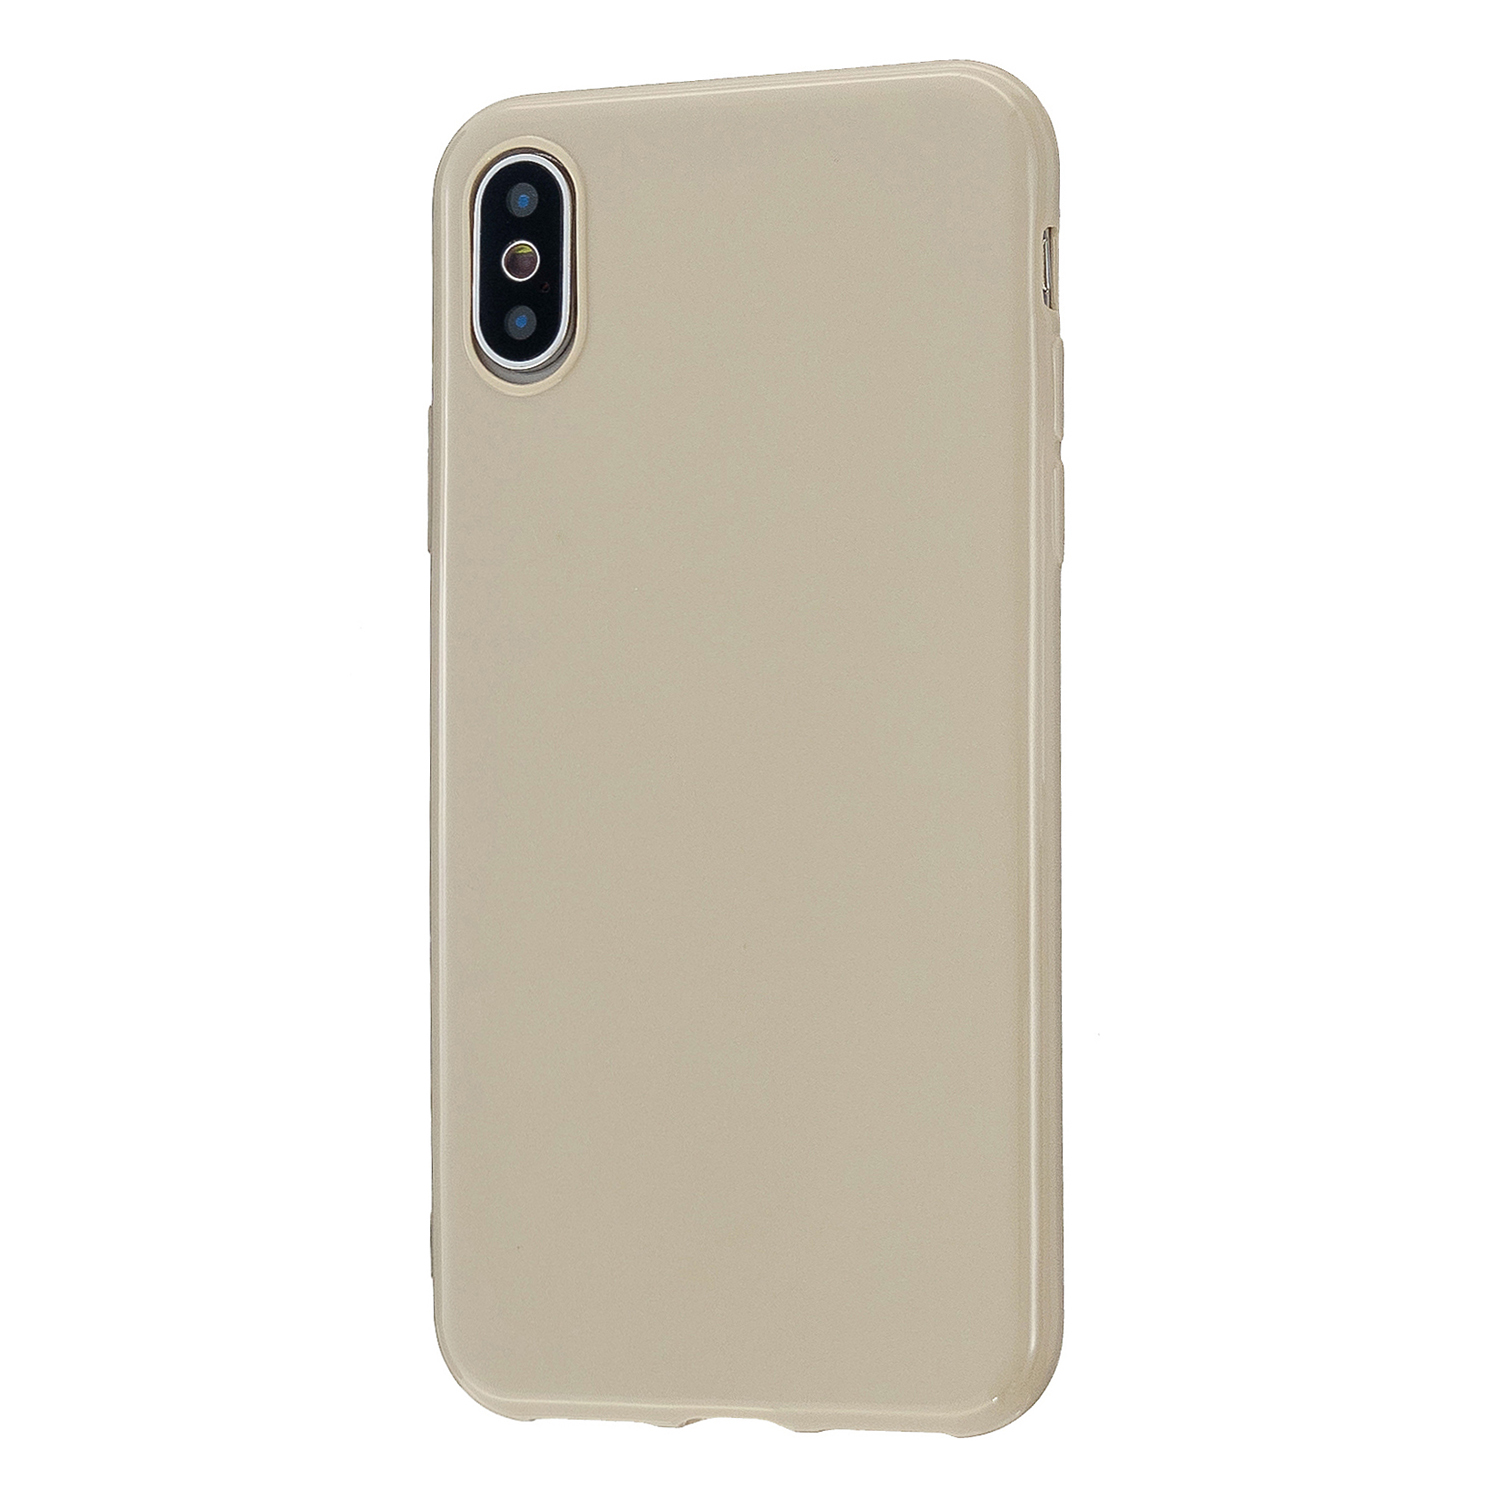 For iPhone X/XS/XS Max/XR  Cellphone Cover Slim Fit Bumper Protective Case Glossy TPU Mobile Phone Shell Milk tea